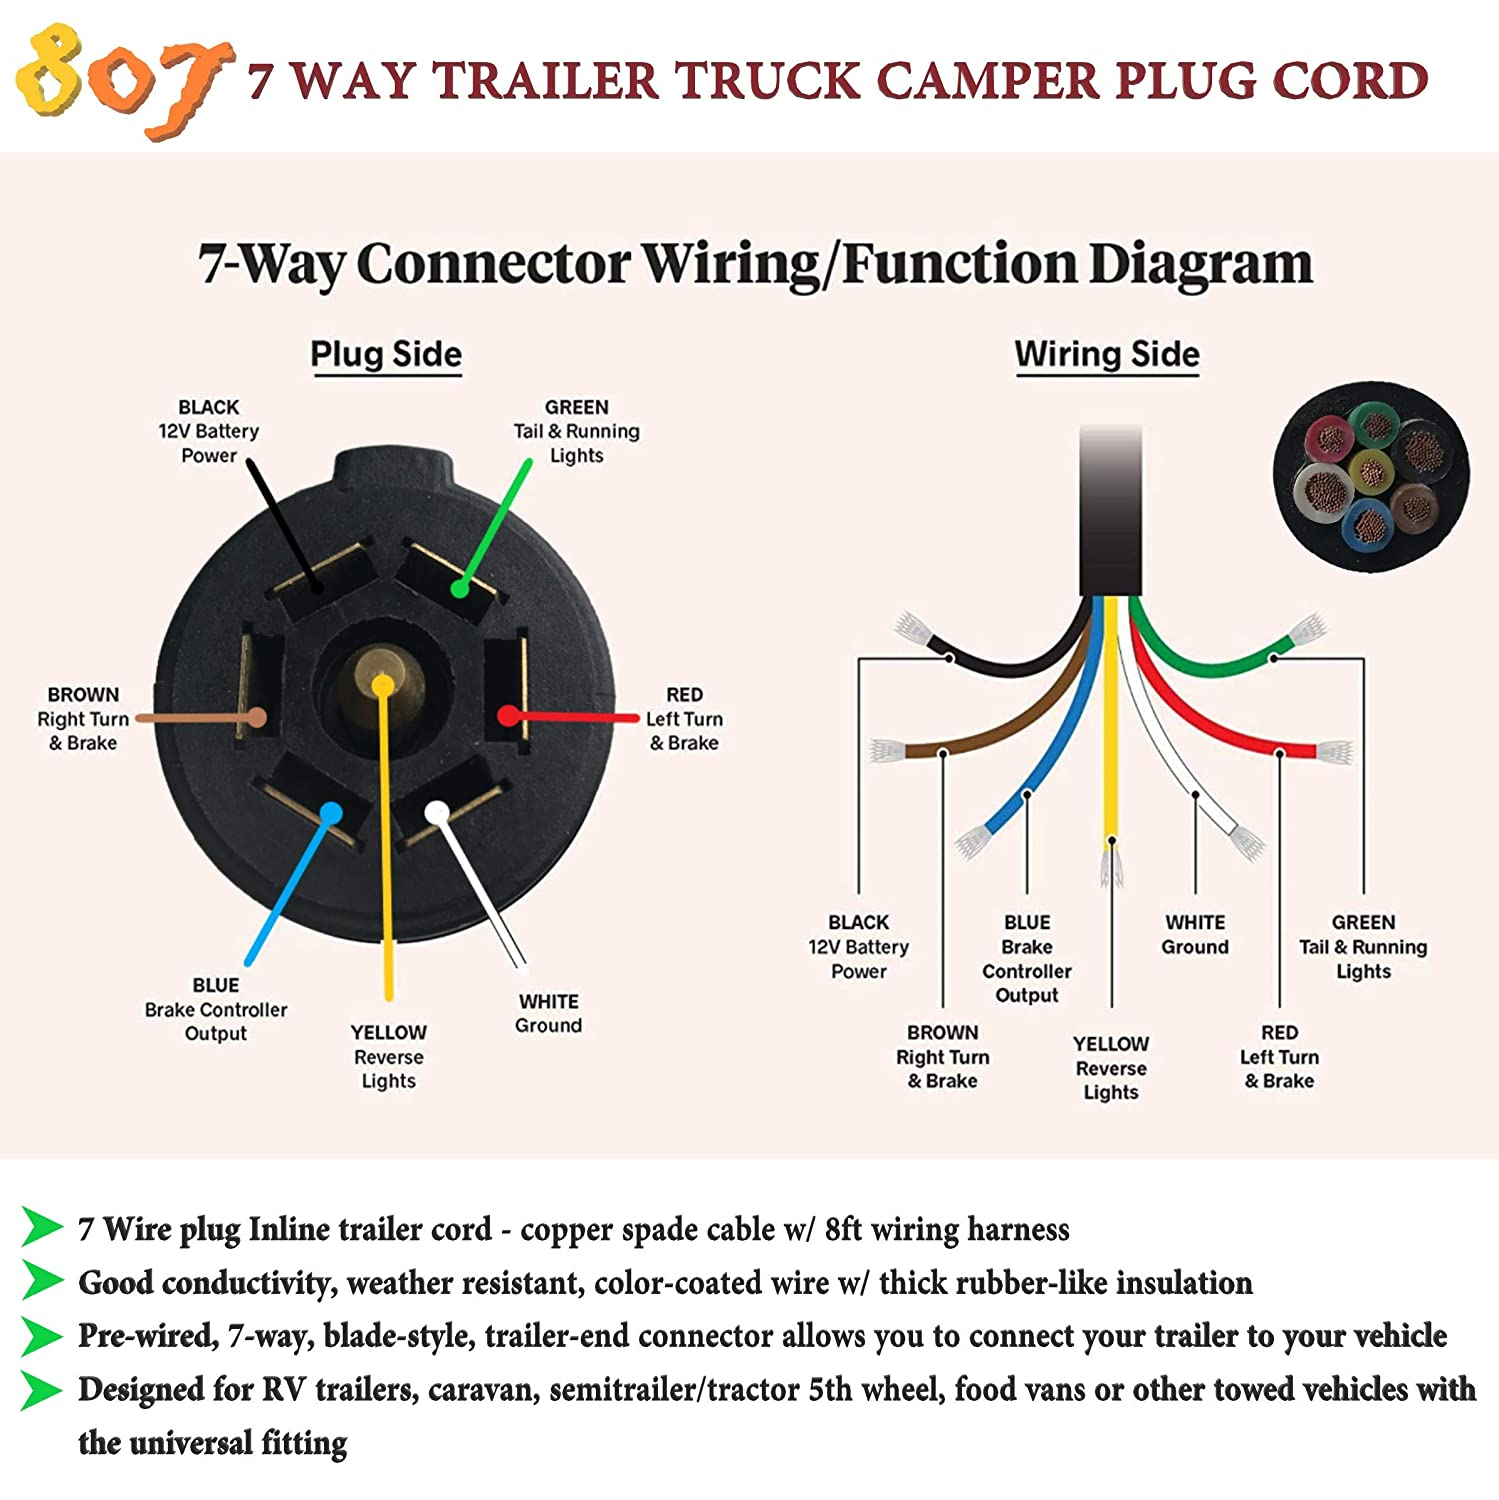 7 way wire harness wiring diagram chevy colorado trailer wiring harness trailer wiring harness cover #9